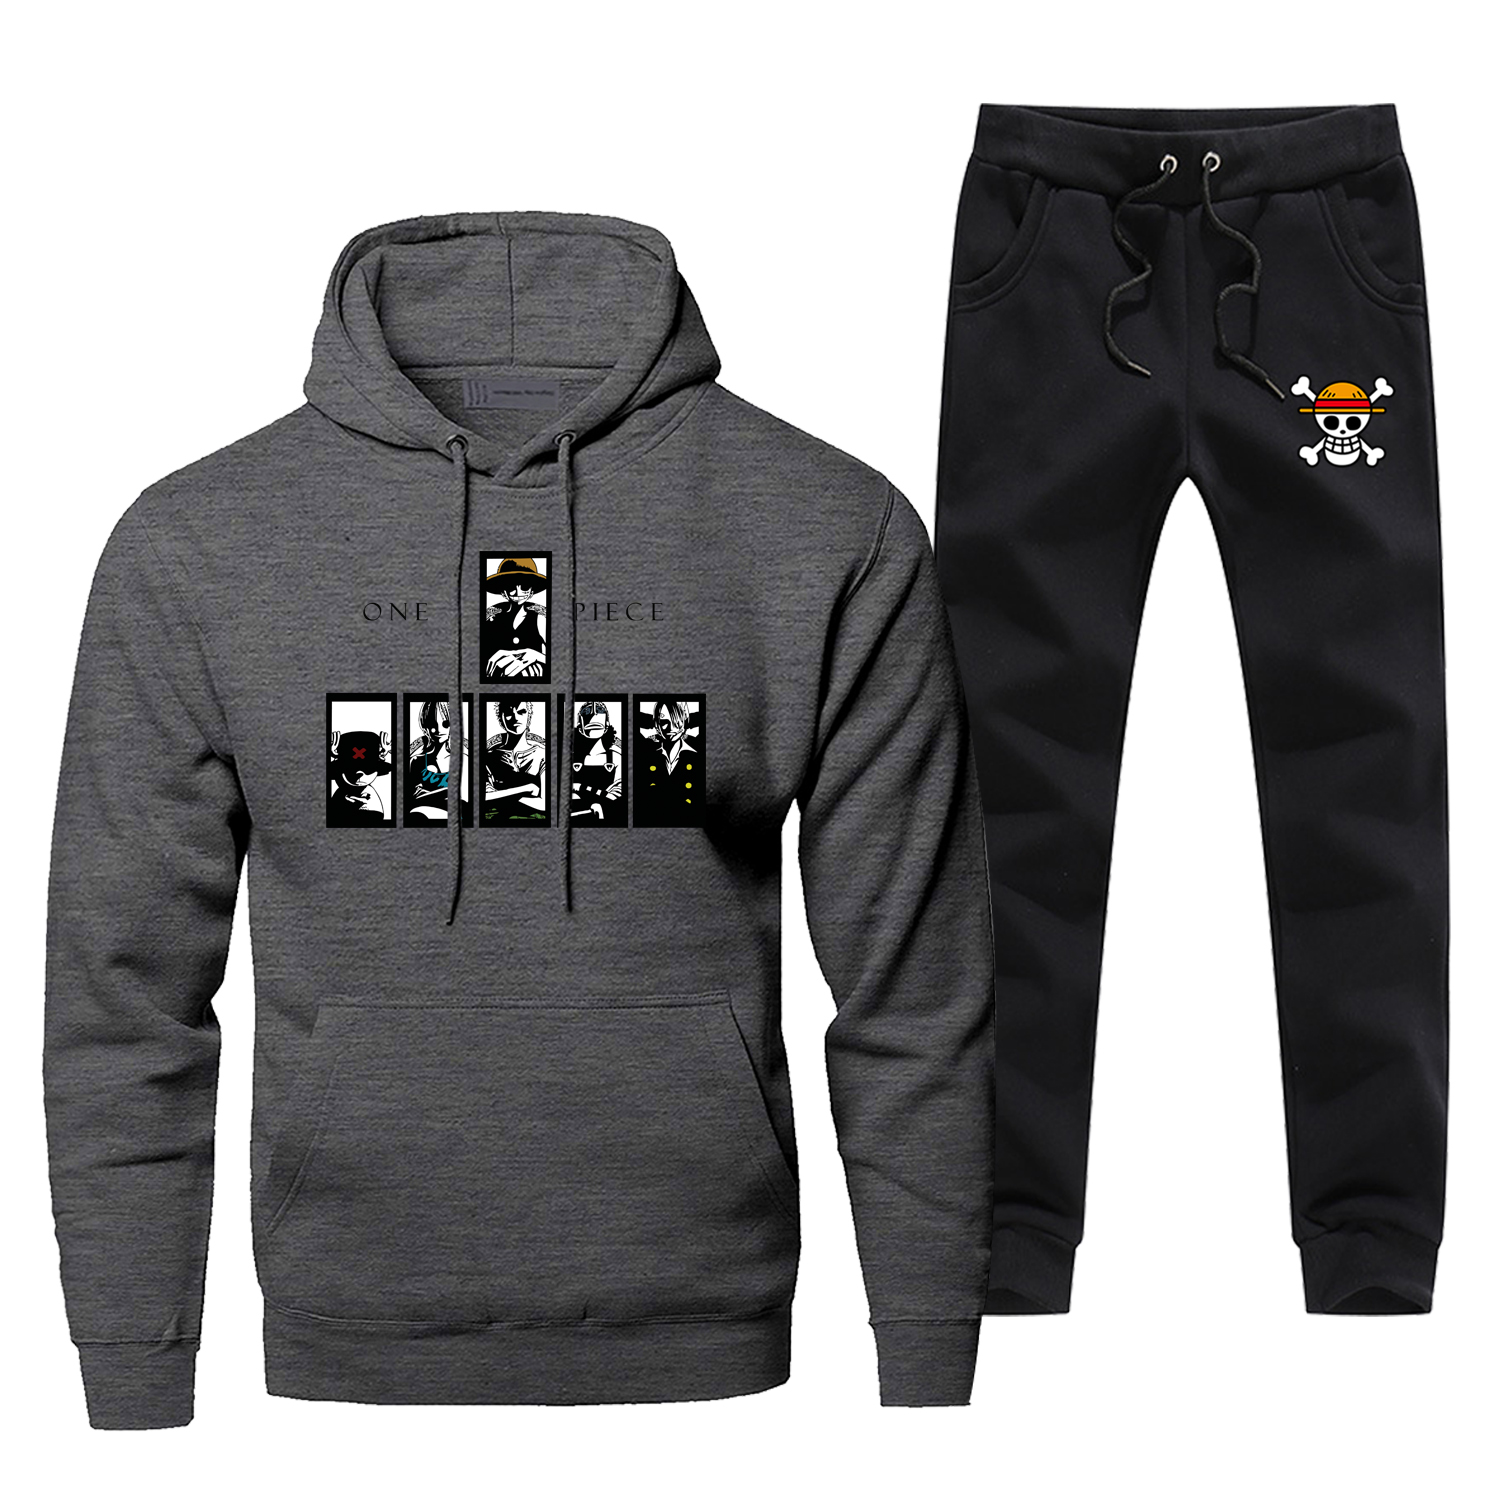 One Piece Luffy Hoodie Pants Set Men Sweatshirt Male Hoodies Sweatshirts Mens Sets Two Piece Pant Pullover Japanese Anime Coat